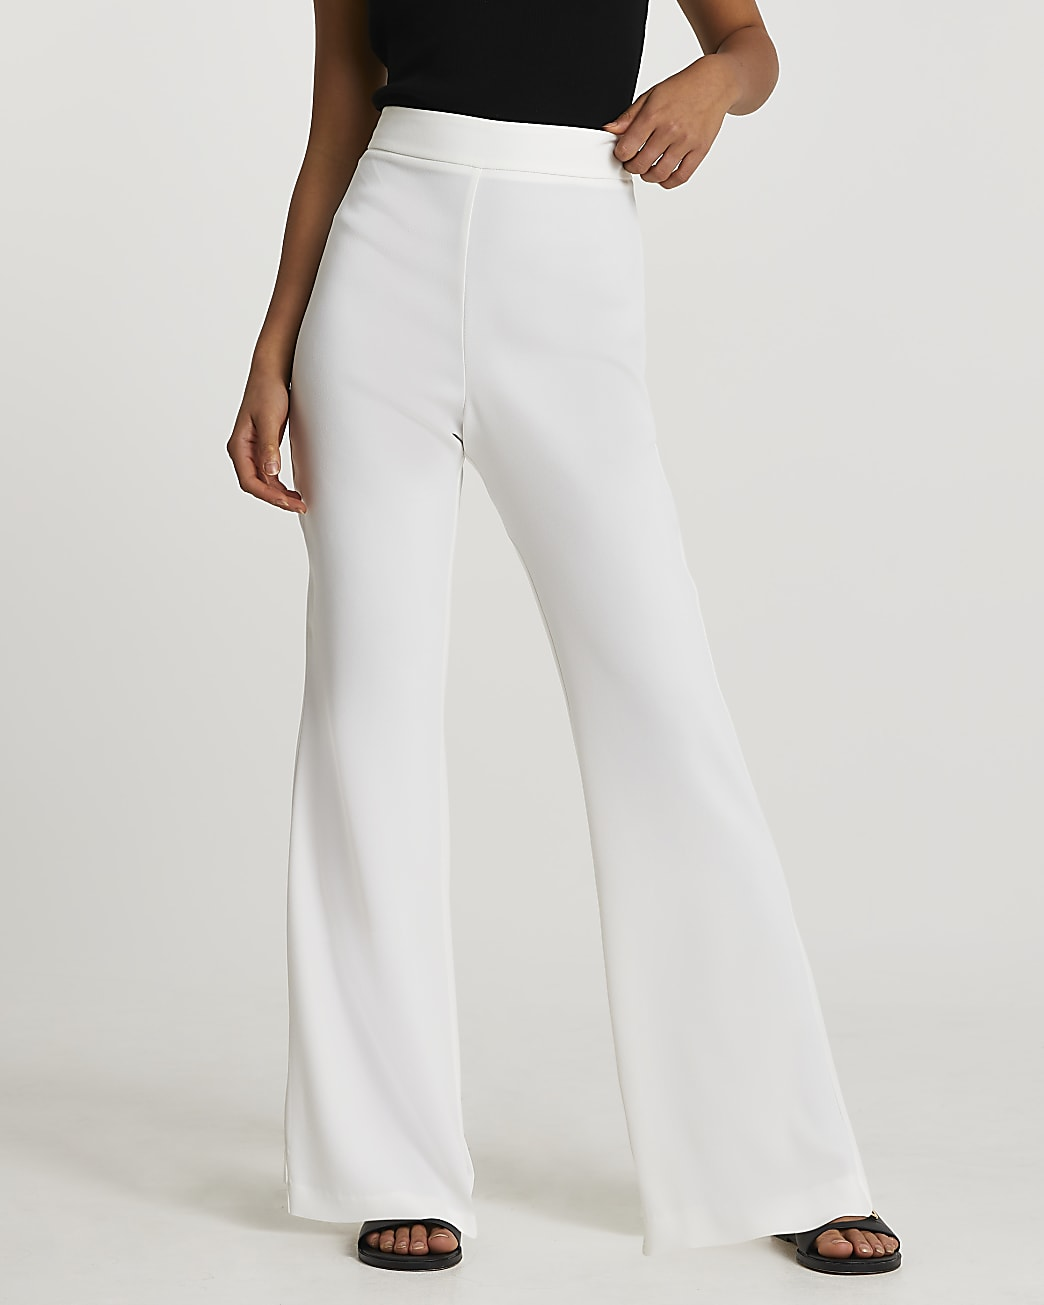 White soft crepe flare trousers